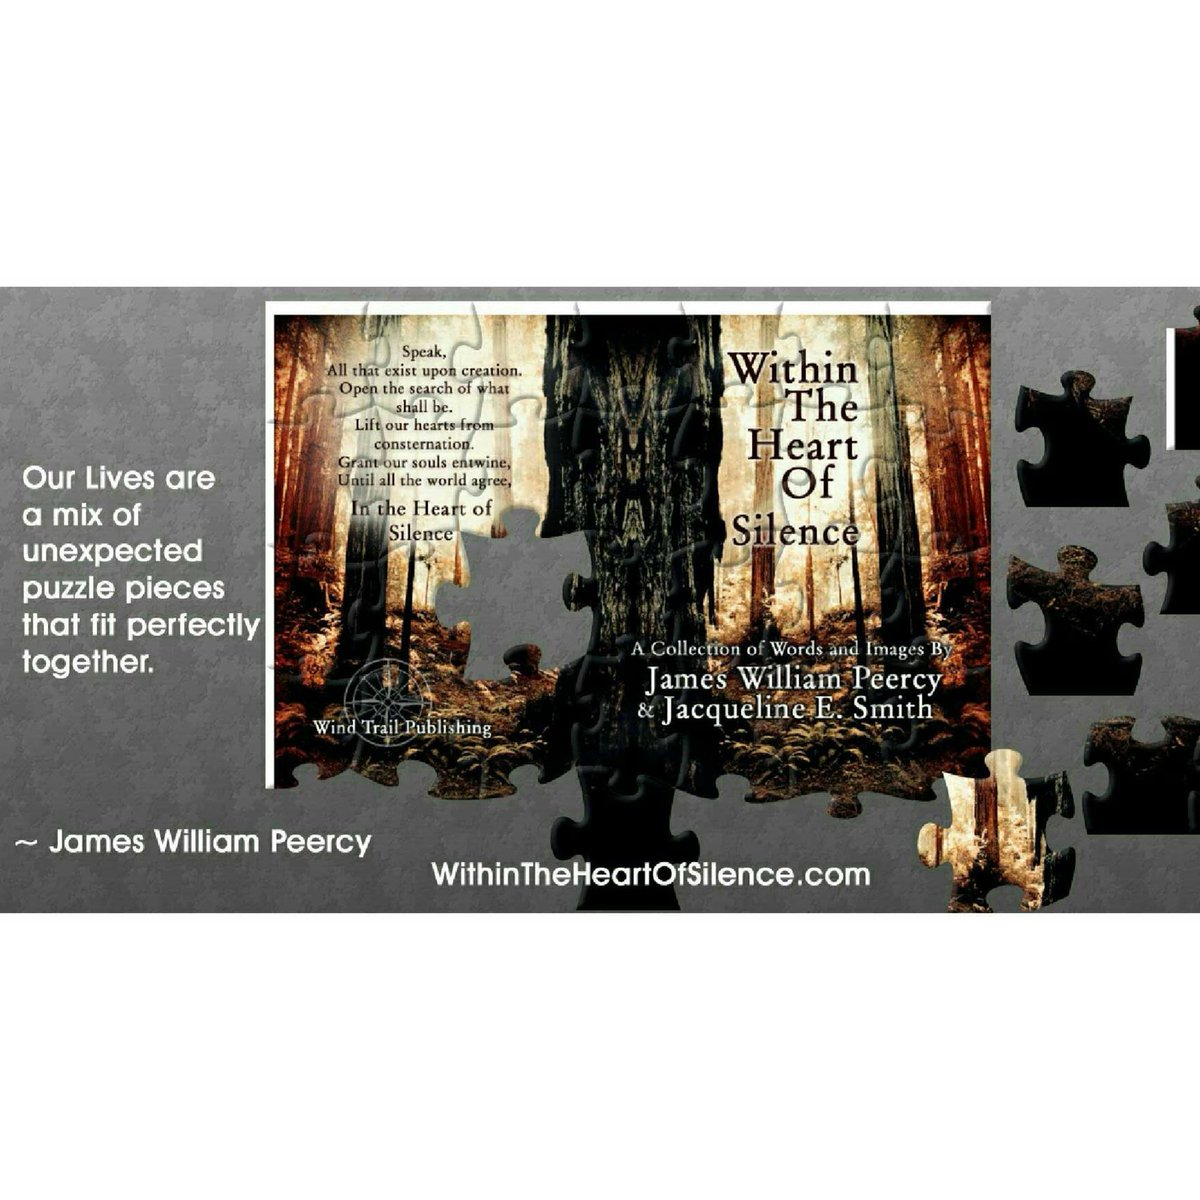 James william peercy jameswpeercy twitter our lives are a mix of unexpected puzzle pieces that fit perfectly together thank you newappleawards bookreviews awardwinning poetrycommunity poetry fandeluxe Image collections